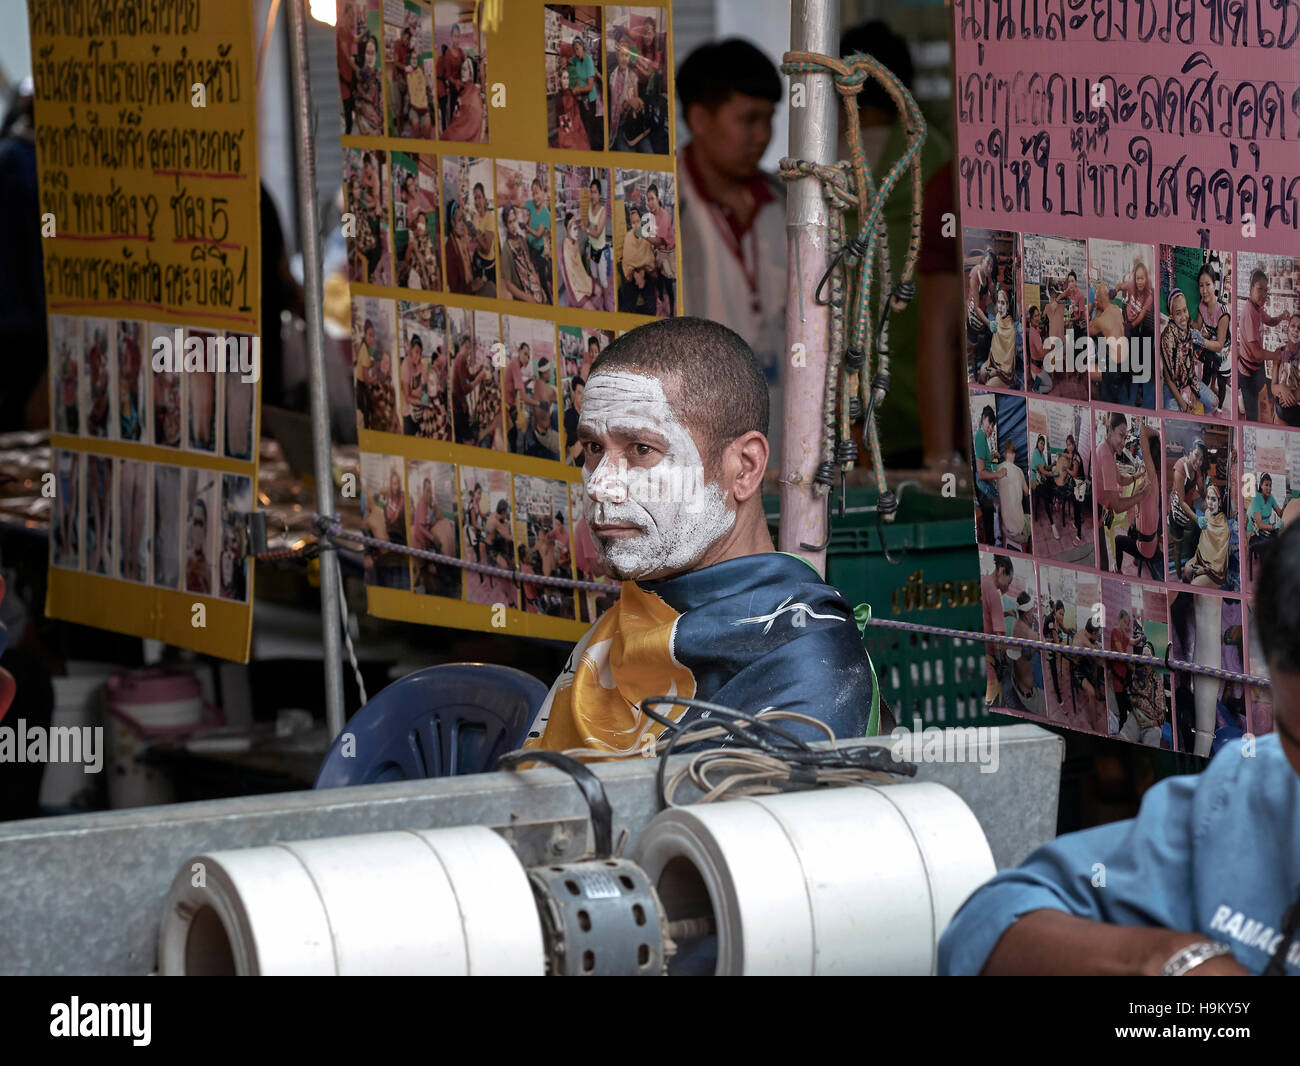 Western male undergoing face hair removal and beautification treatment in Thailand S. E. Asia - Stock Image